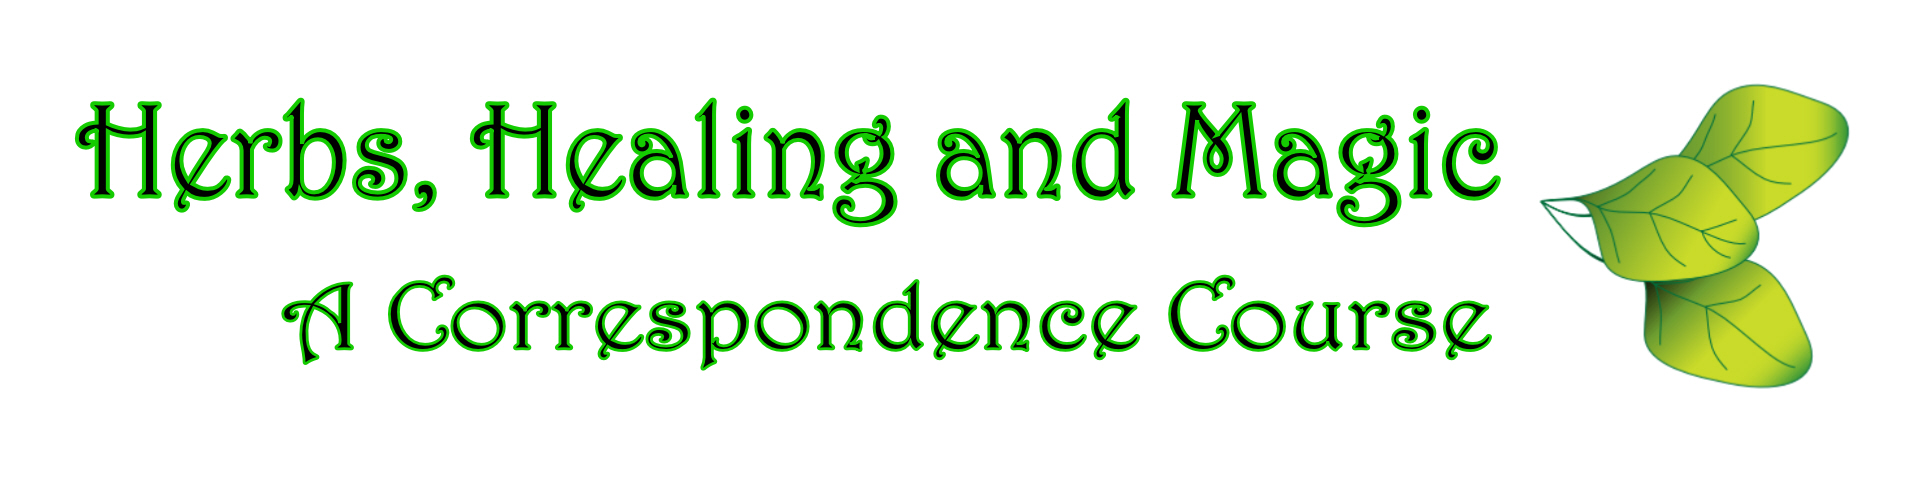 Link to the Herbs, Healing and Magic Correspondence Course